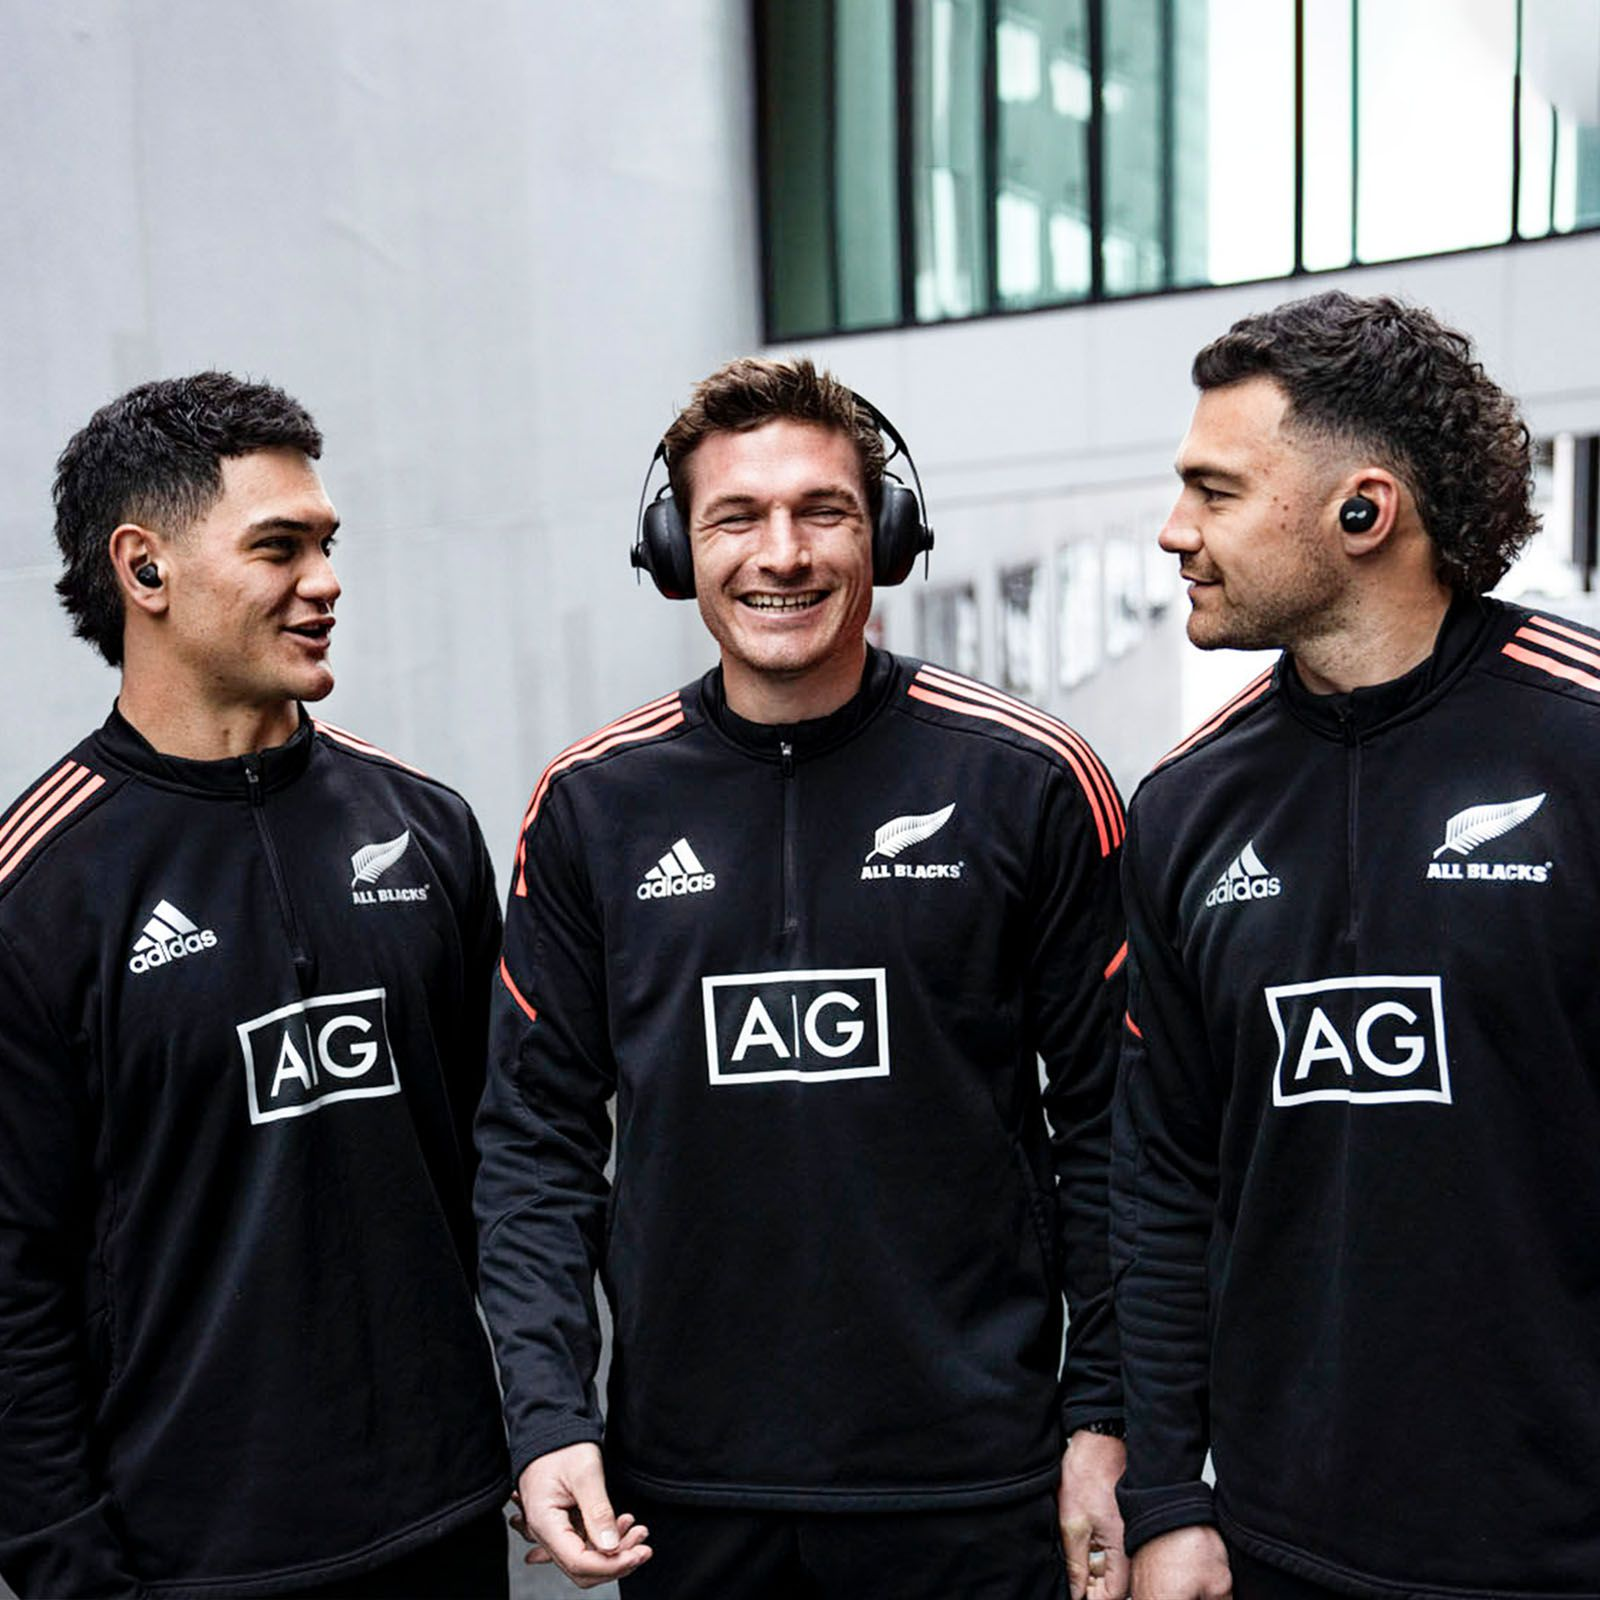 Three of the players from the New Zealand rugby team, All Blacks, wearing the NURABUDS earbuds, NURAPHONE headphones and NURATRUE earbuds